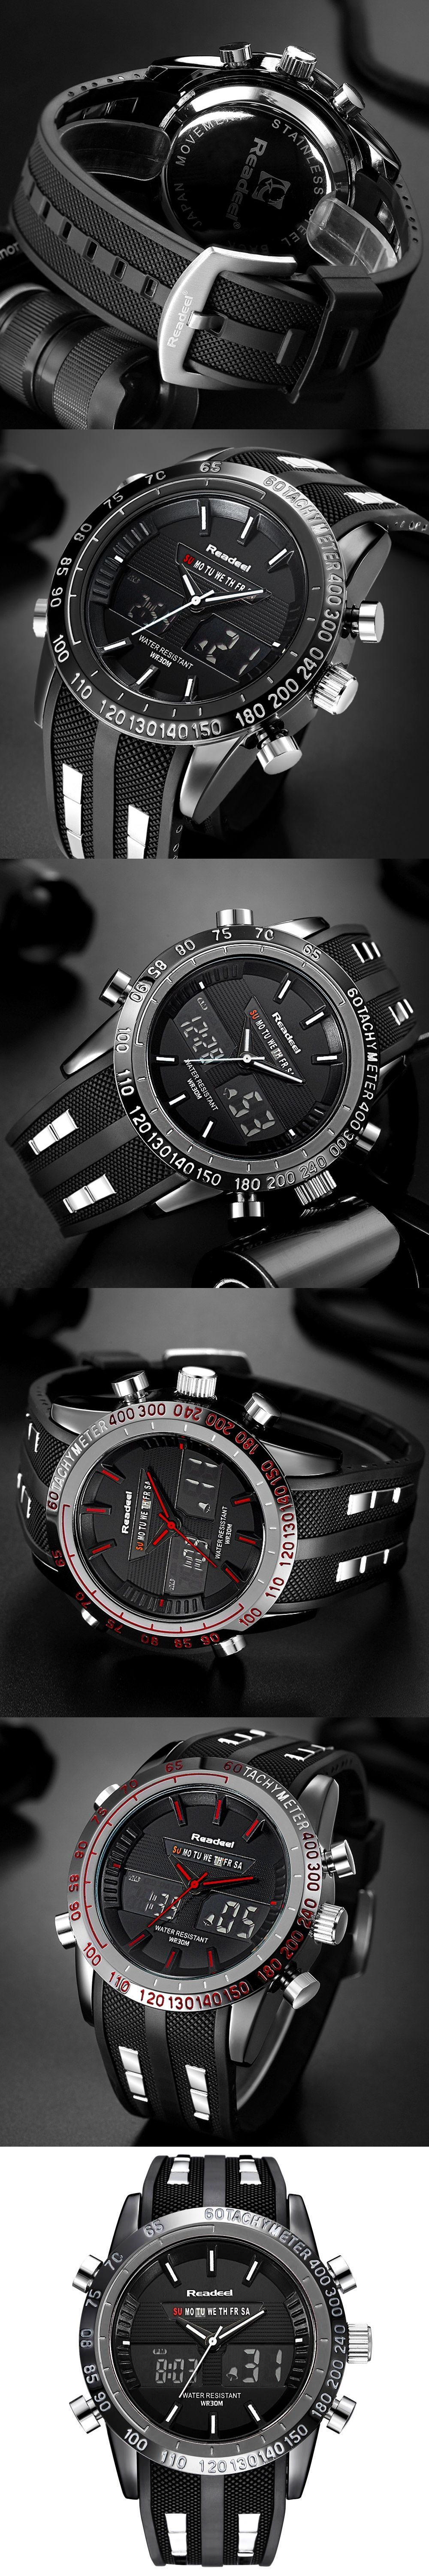 watches wristwatch for hour digital dhgate sale pengle from hot men waterproof product fashion multifunction gift watch